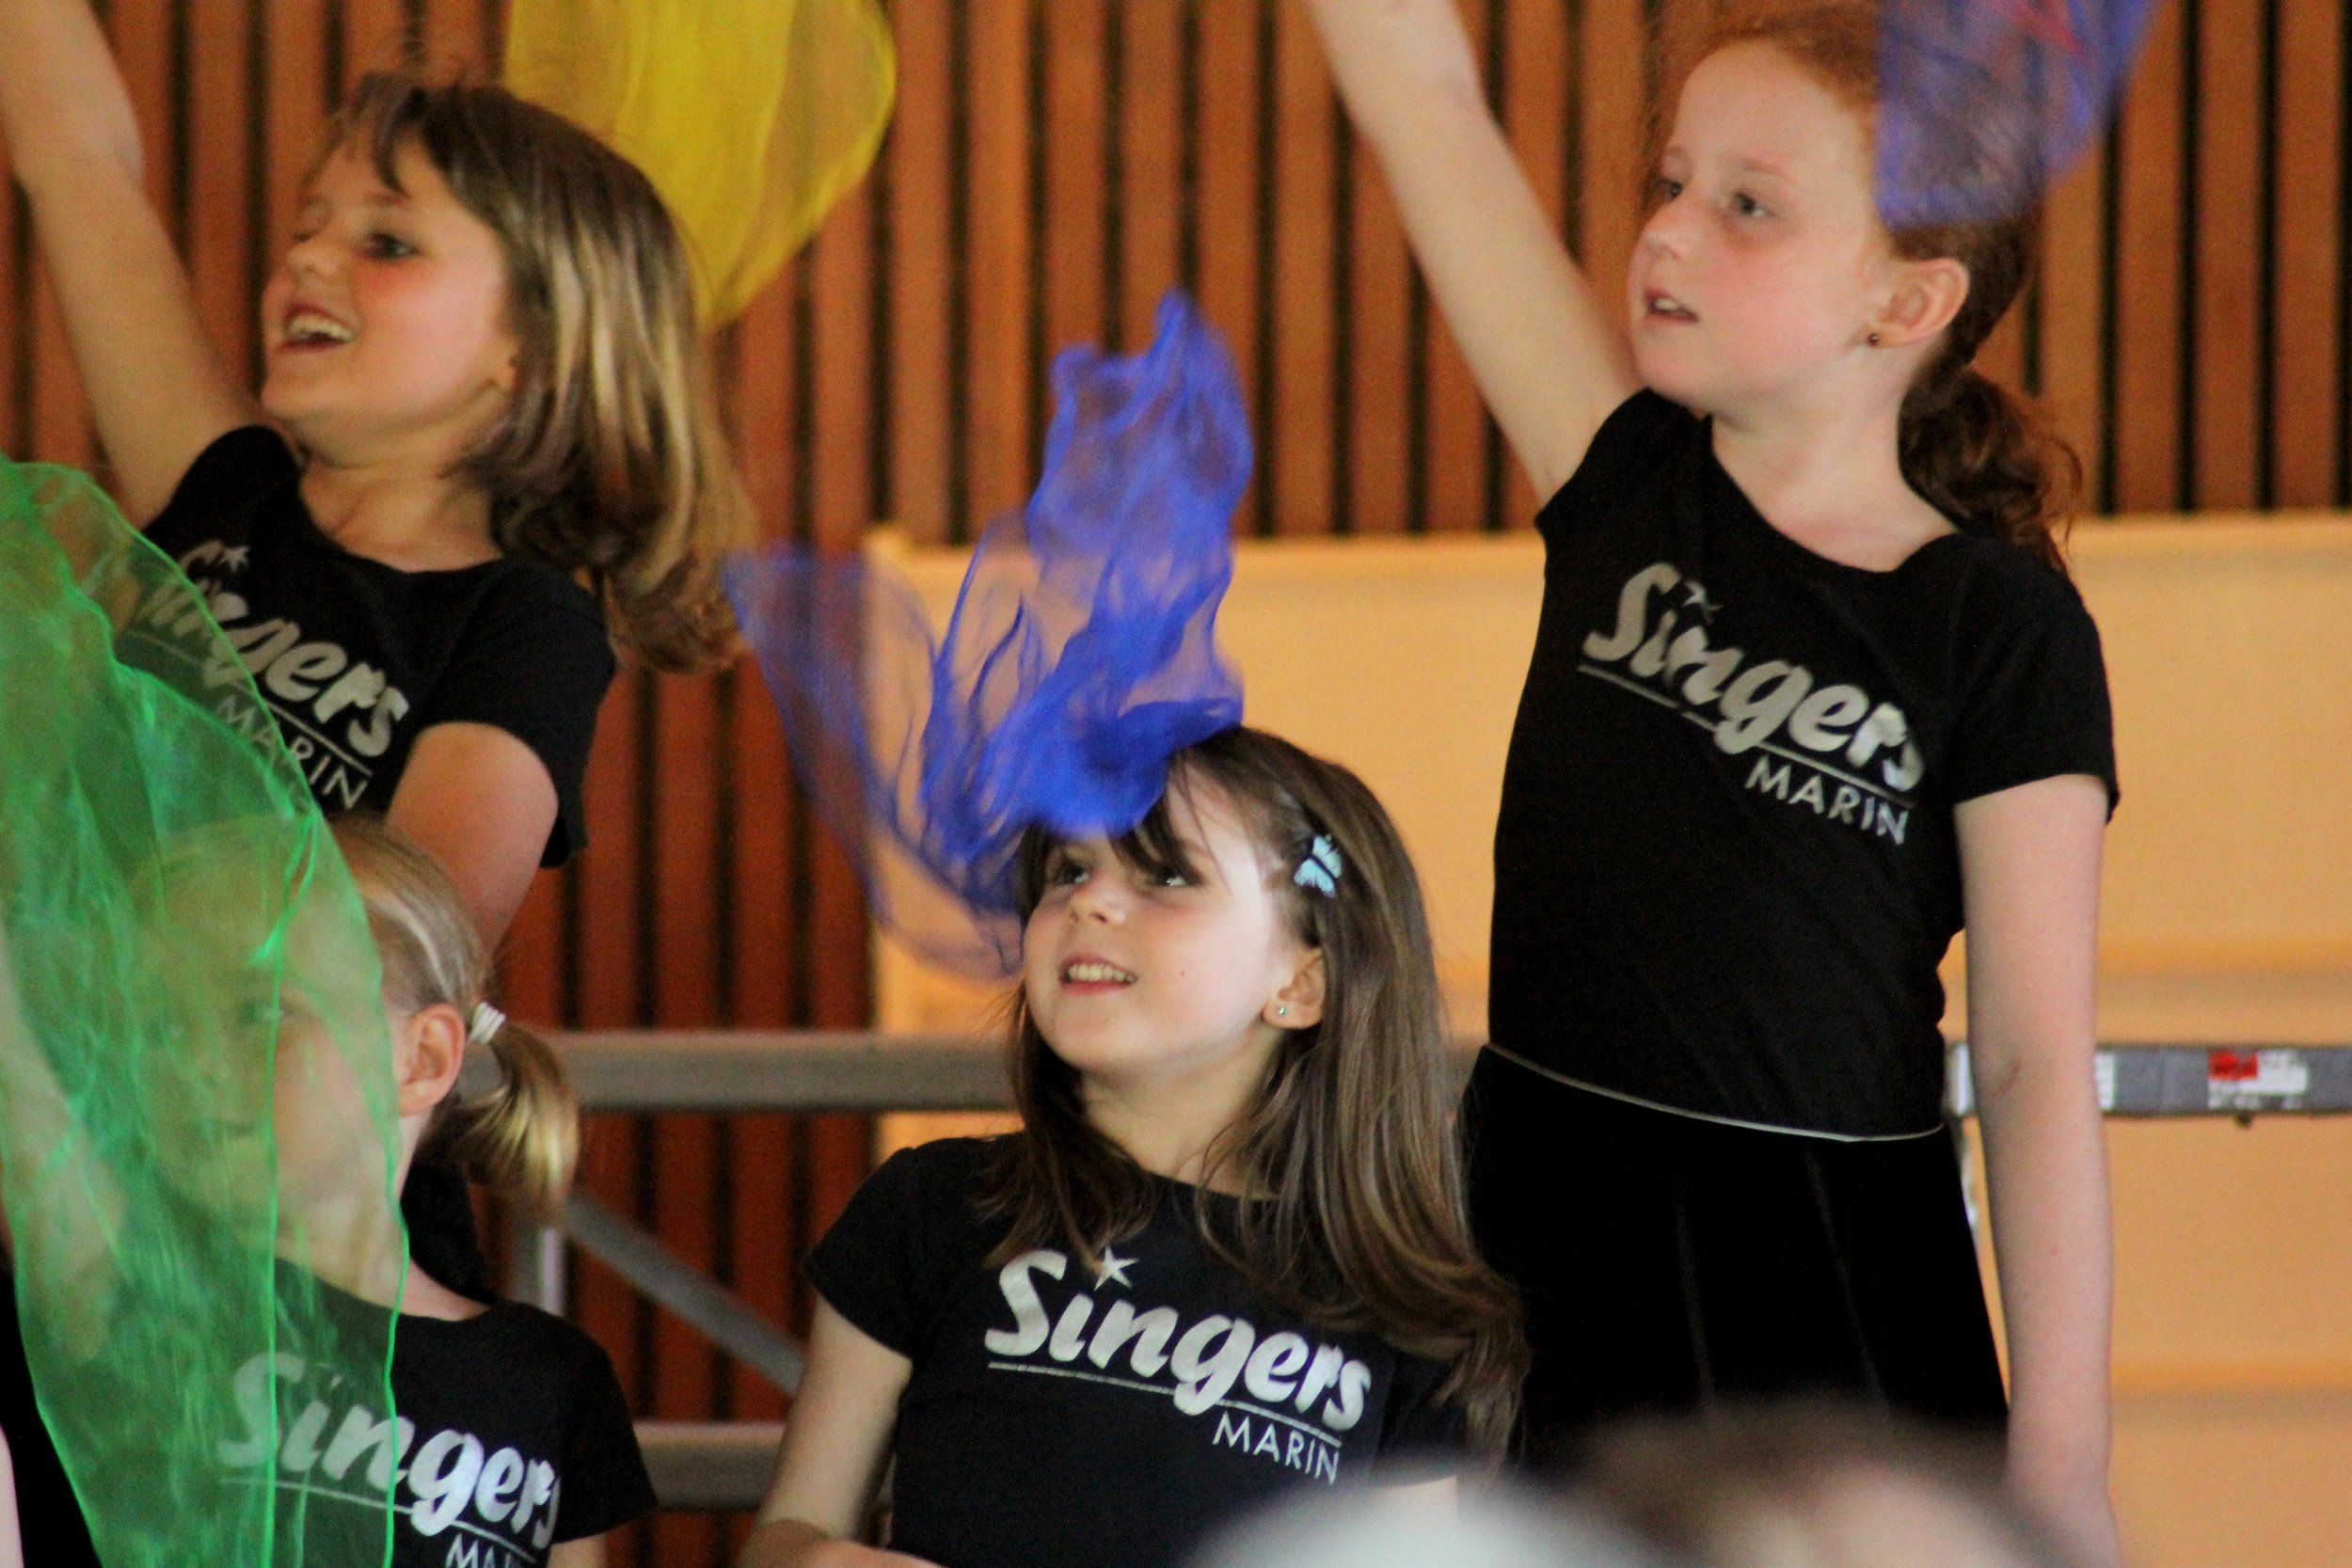 TWINKLING STARLETS (Boys & Girls: Ages 4&5) - The young children are invited to experience singing, creative movement, singing games and more with the help of a rich collection of traditional songs.